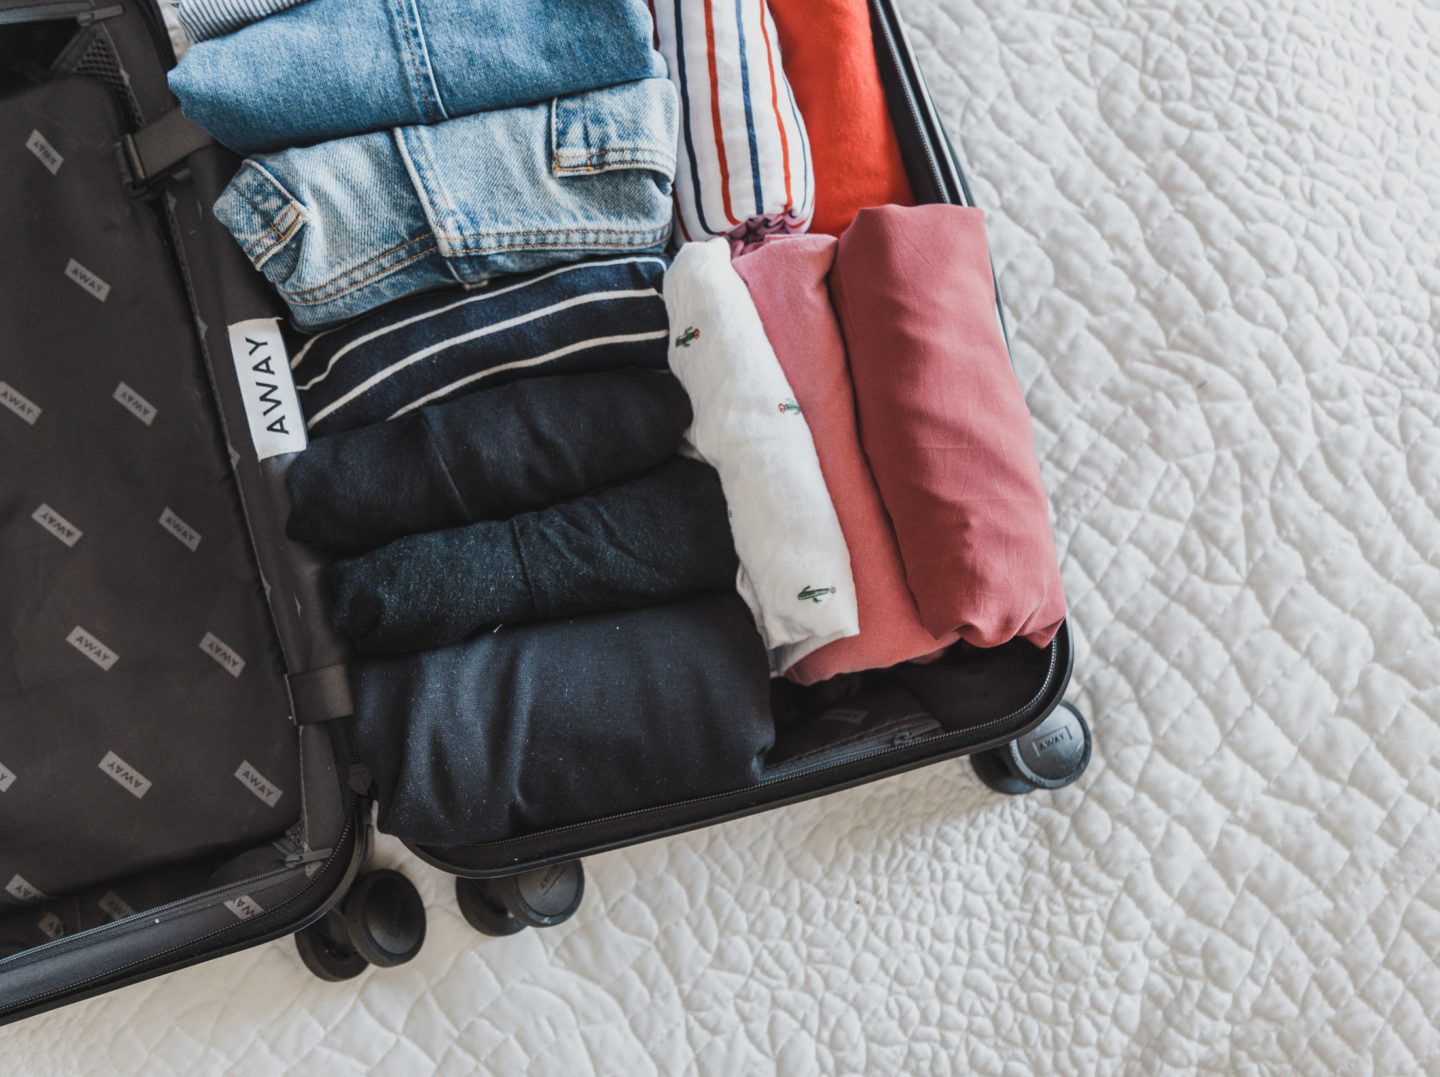 My Basic Packing List: Things I Bring Every Trip